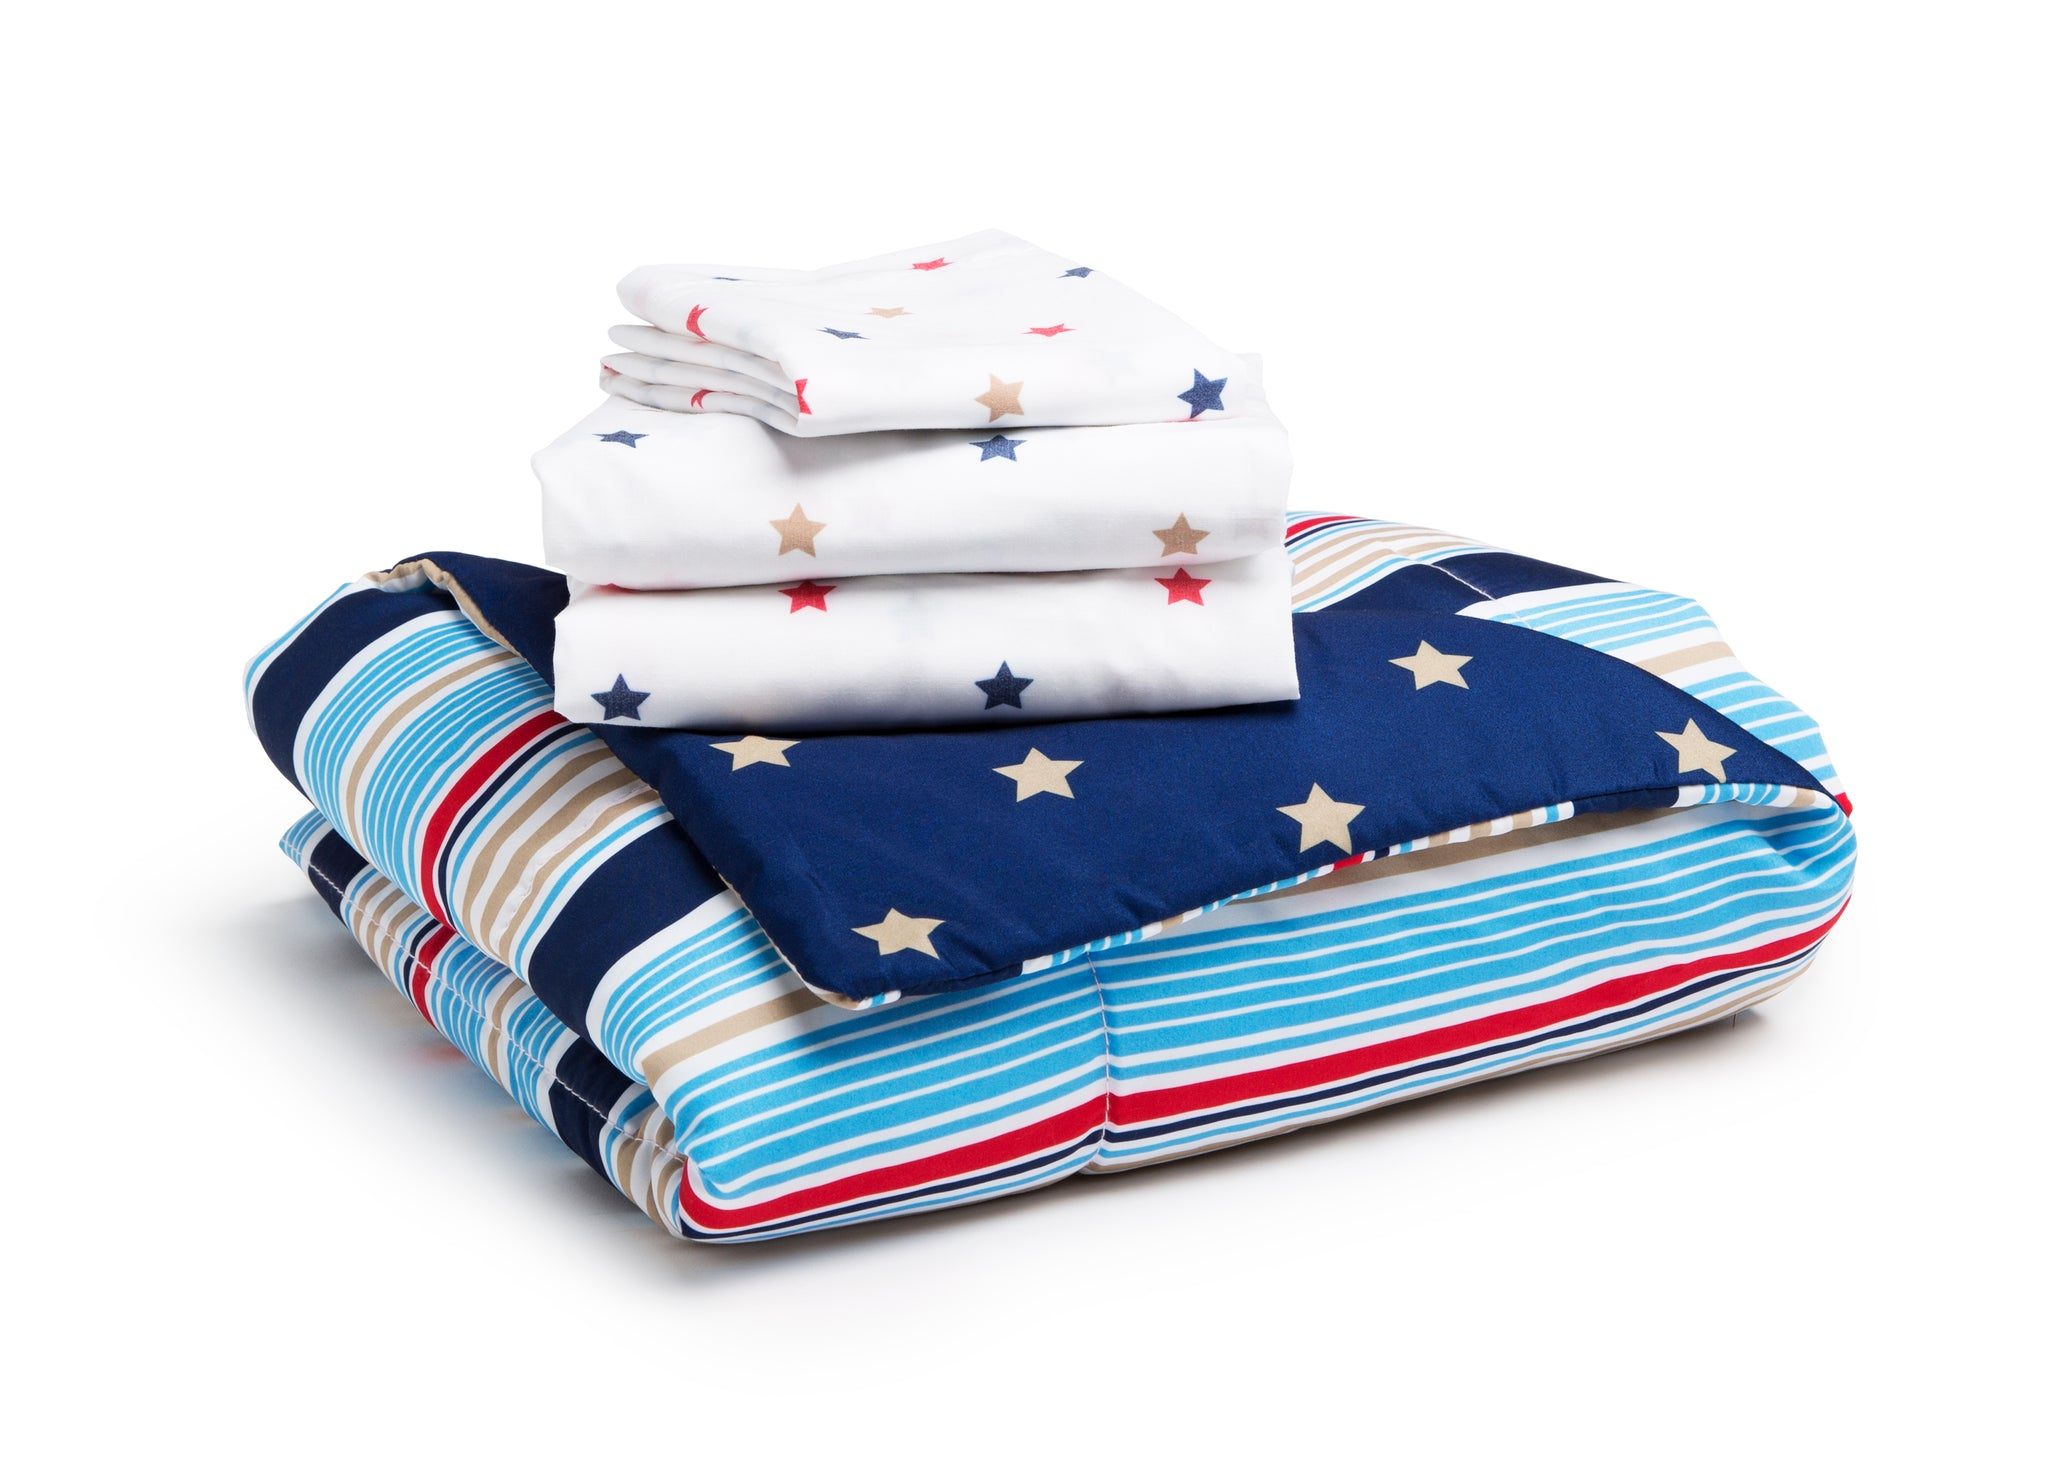 Boy 4-Piece Toddler Bedding Set, Stars and Stripes (2200) a4a